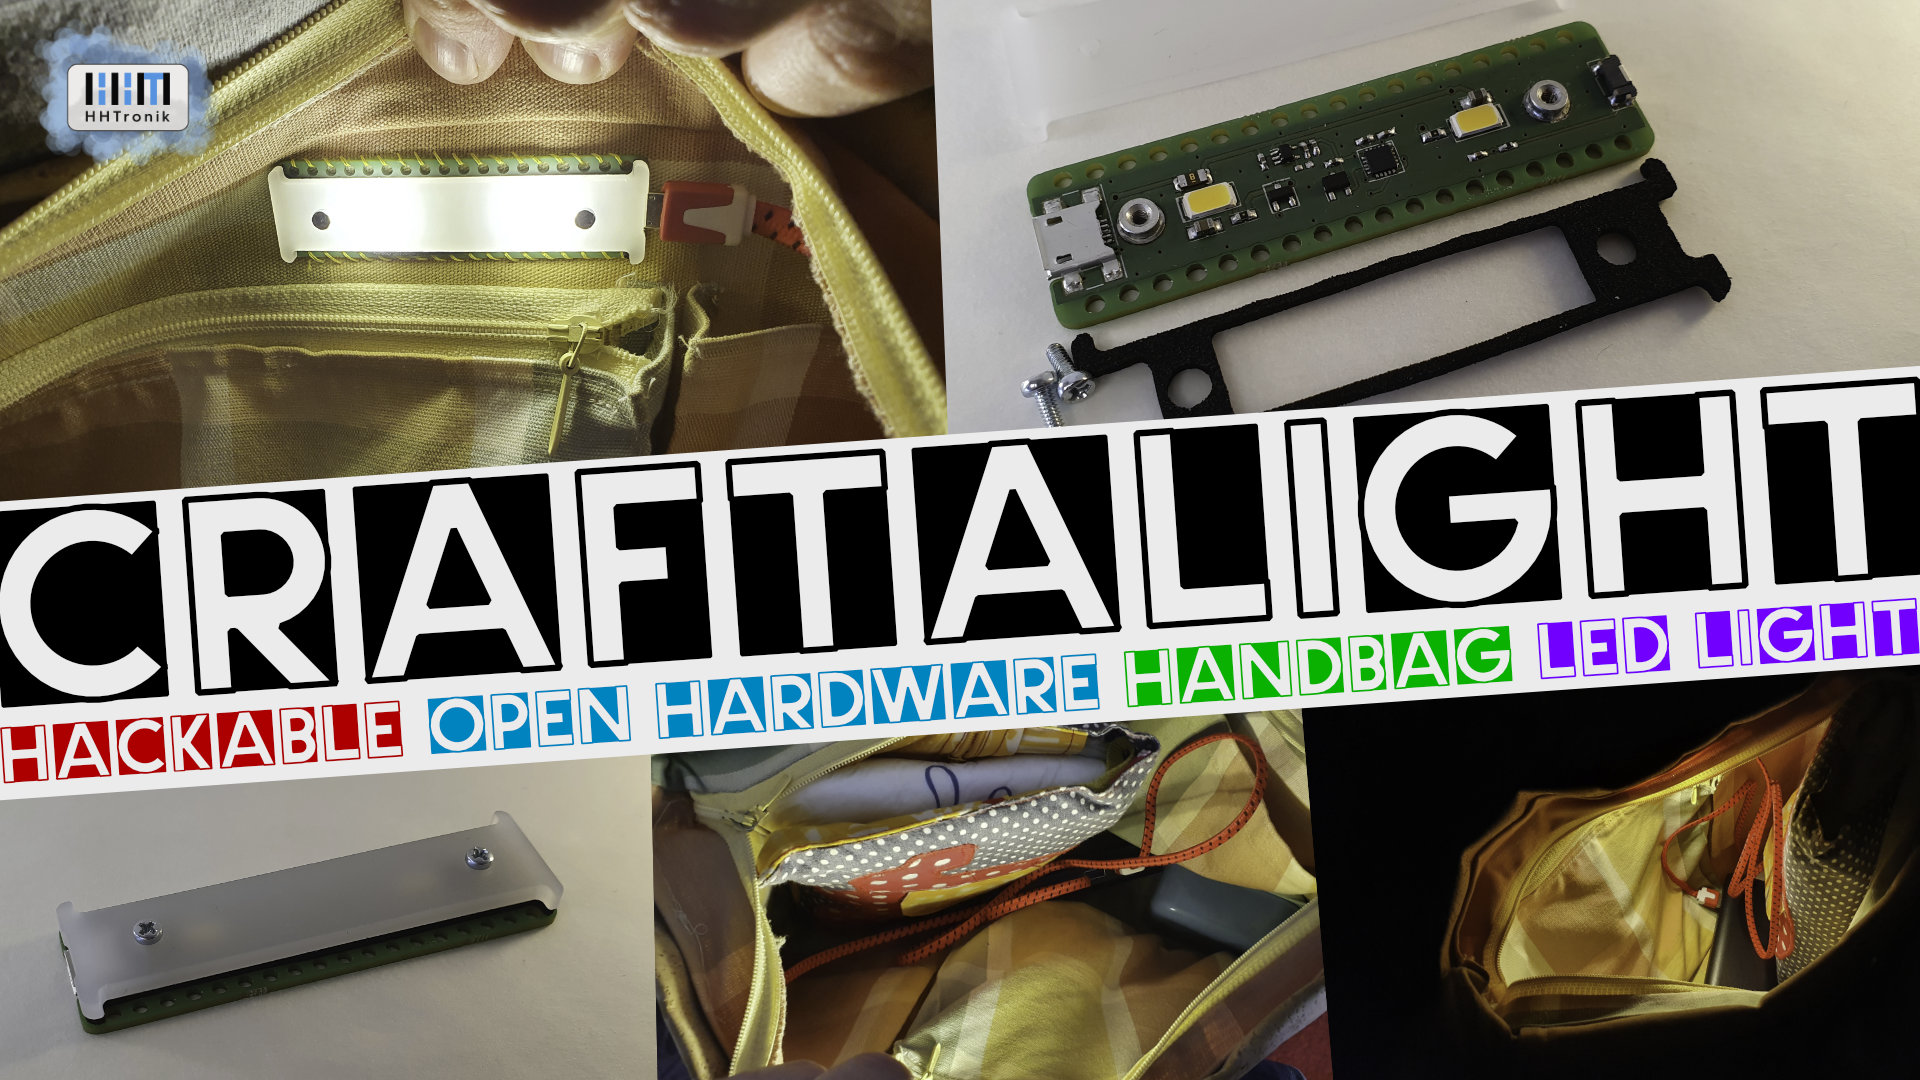 Craftalight-campaign-banner